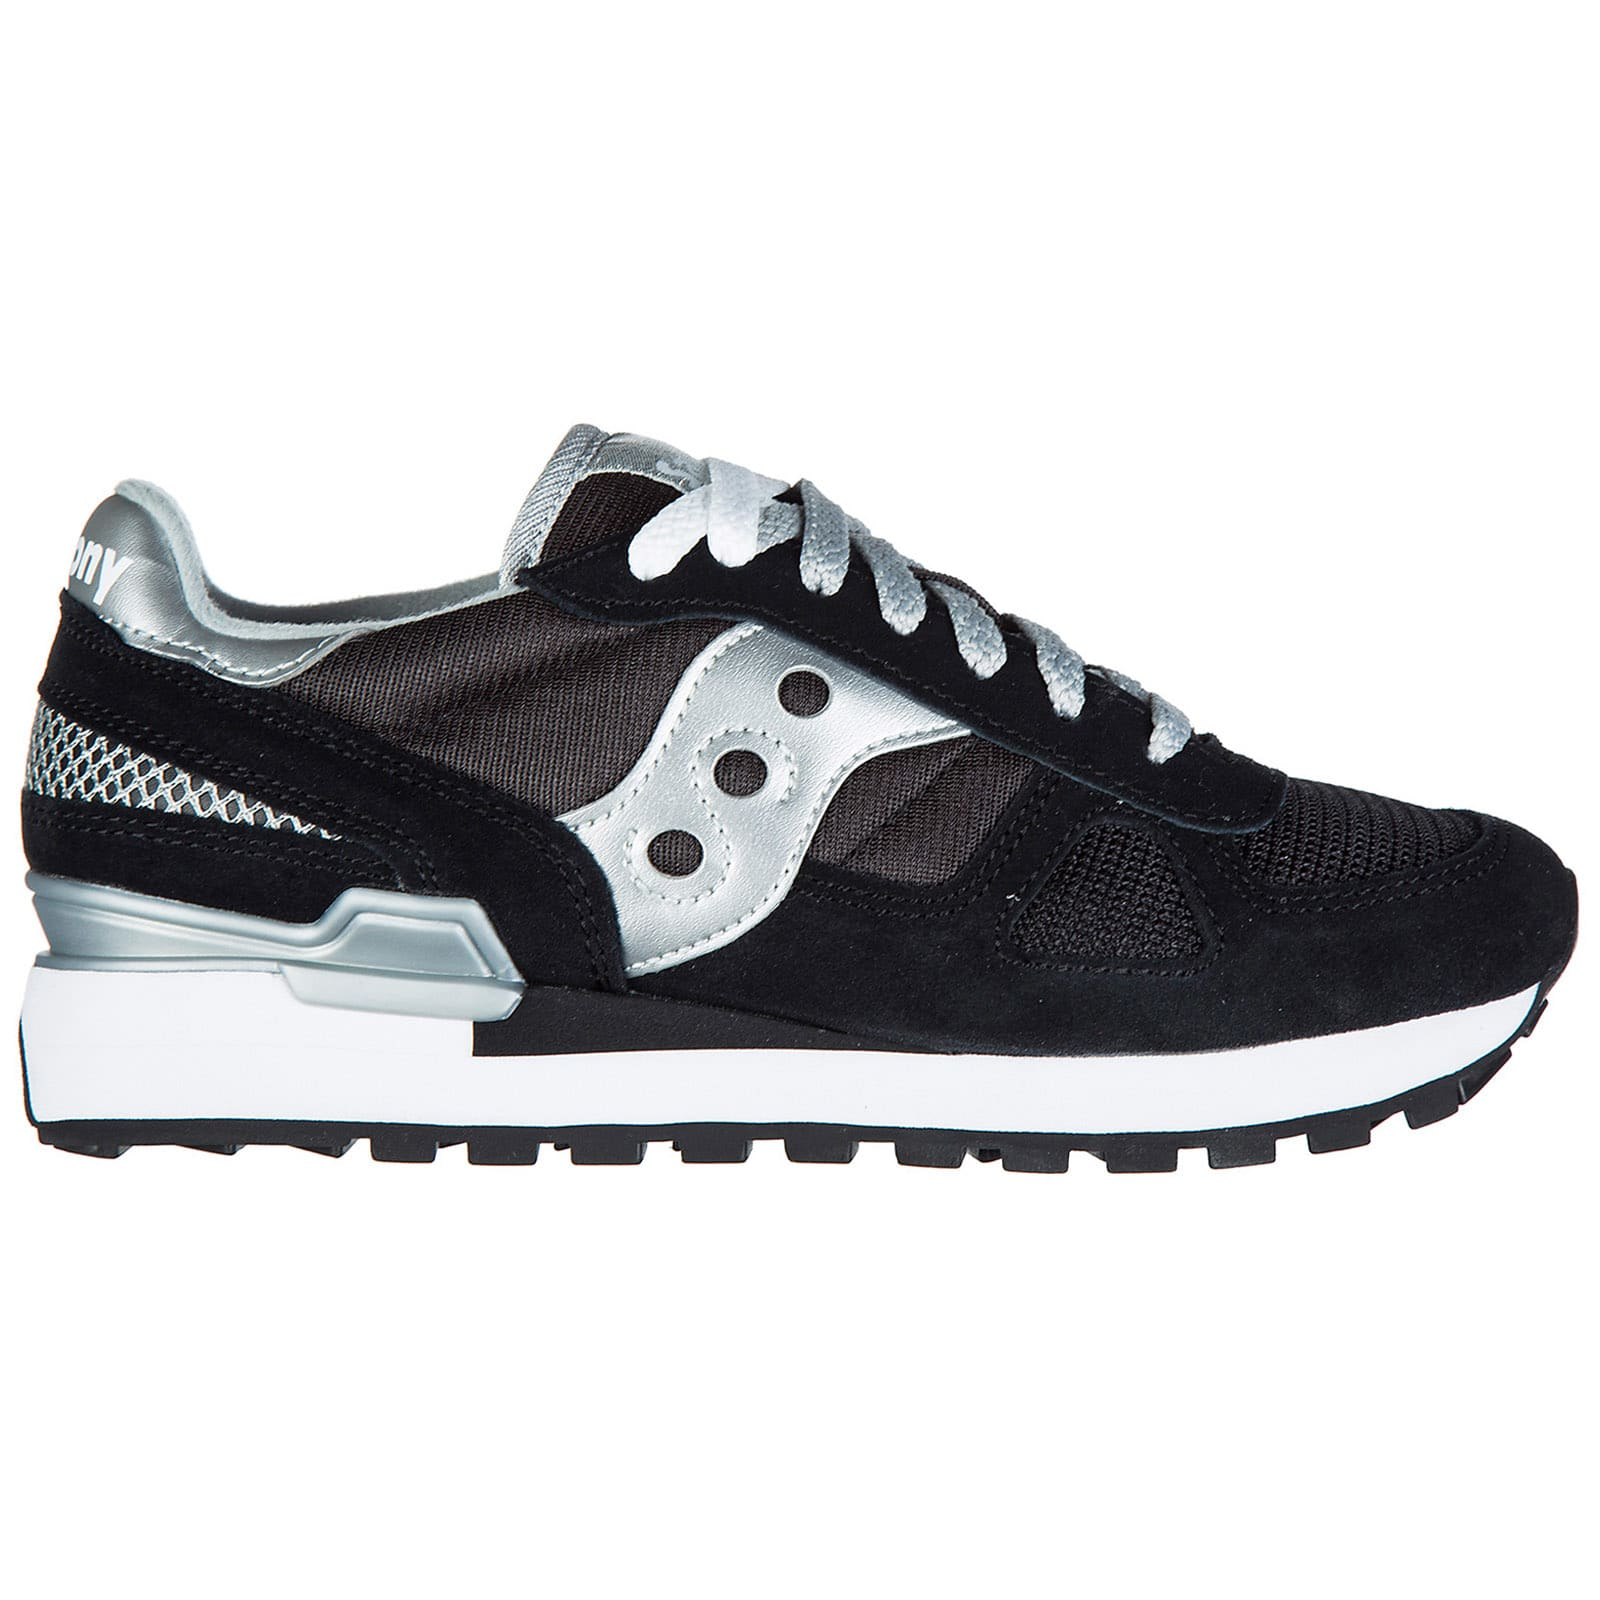 reputable site 28fd4 8cf8e Saucony Shoes Suede Trainers Sneakers Shadow Original